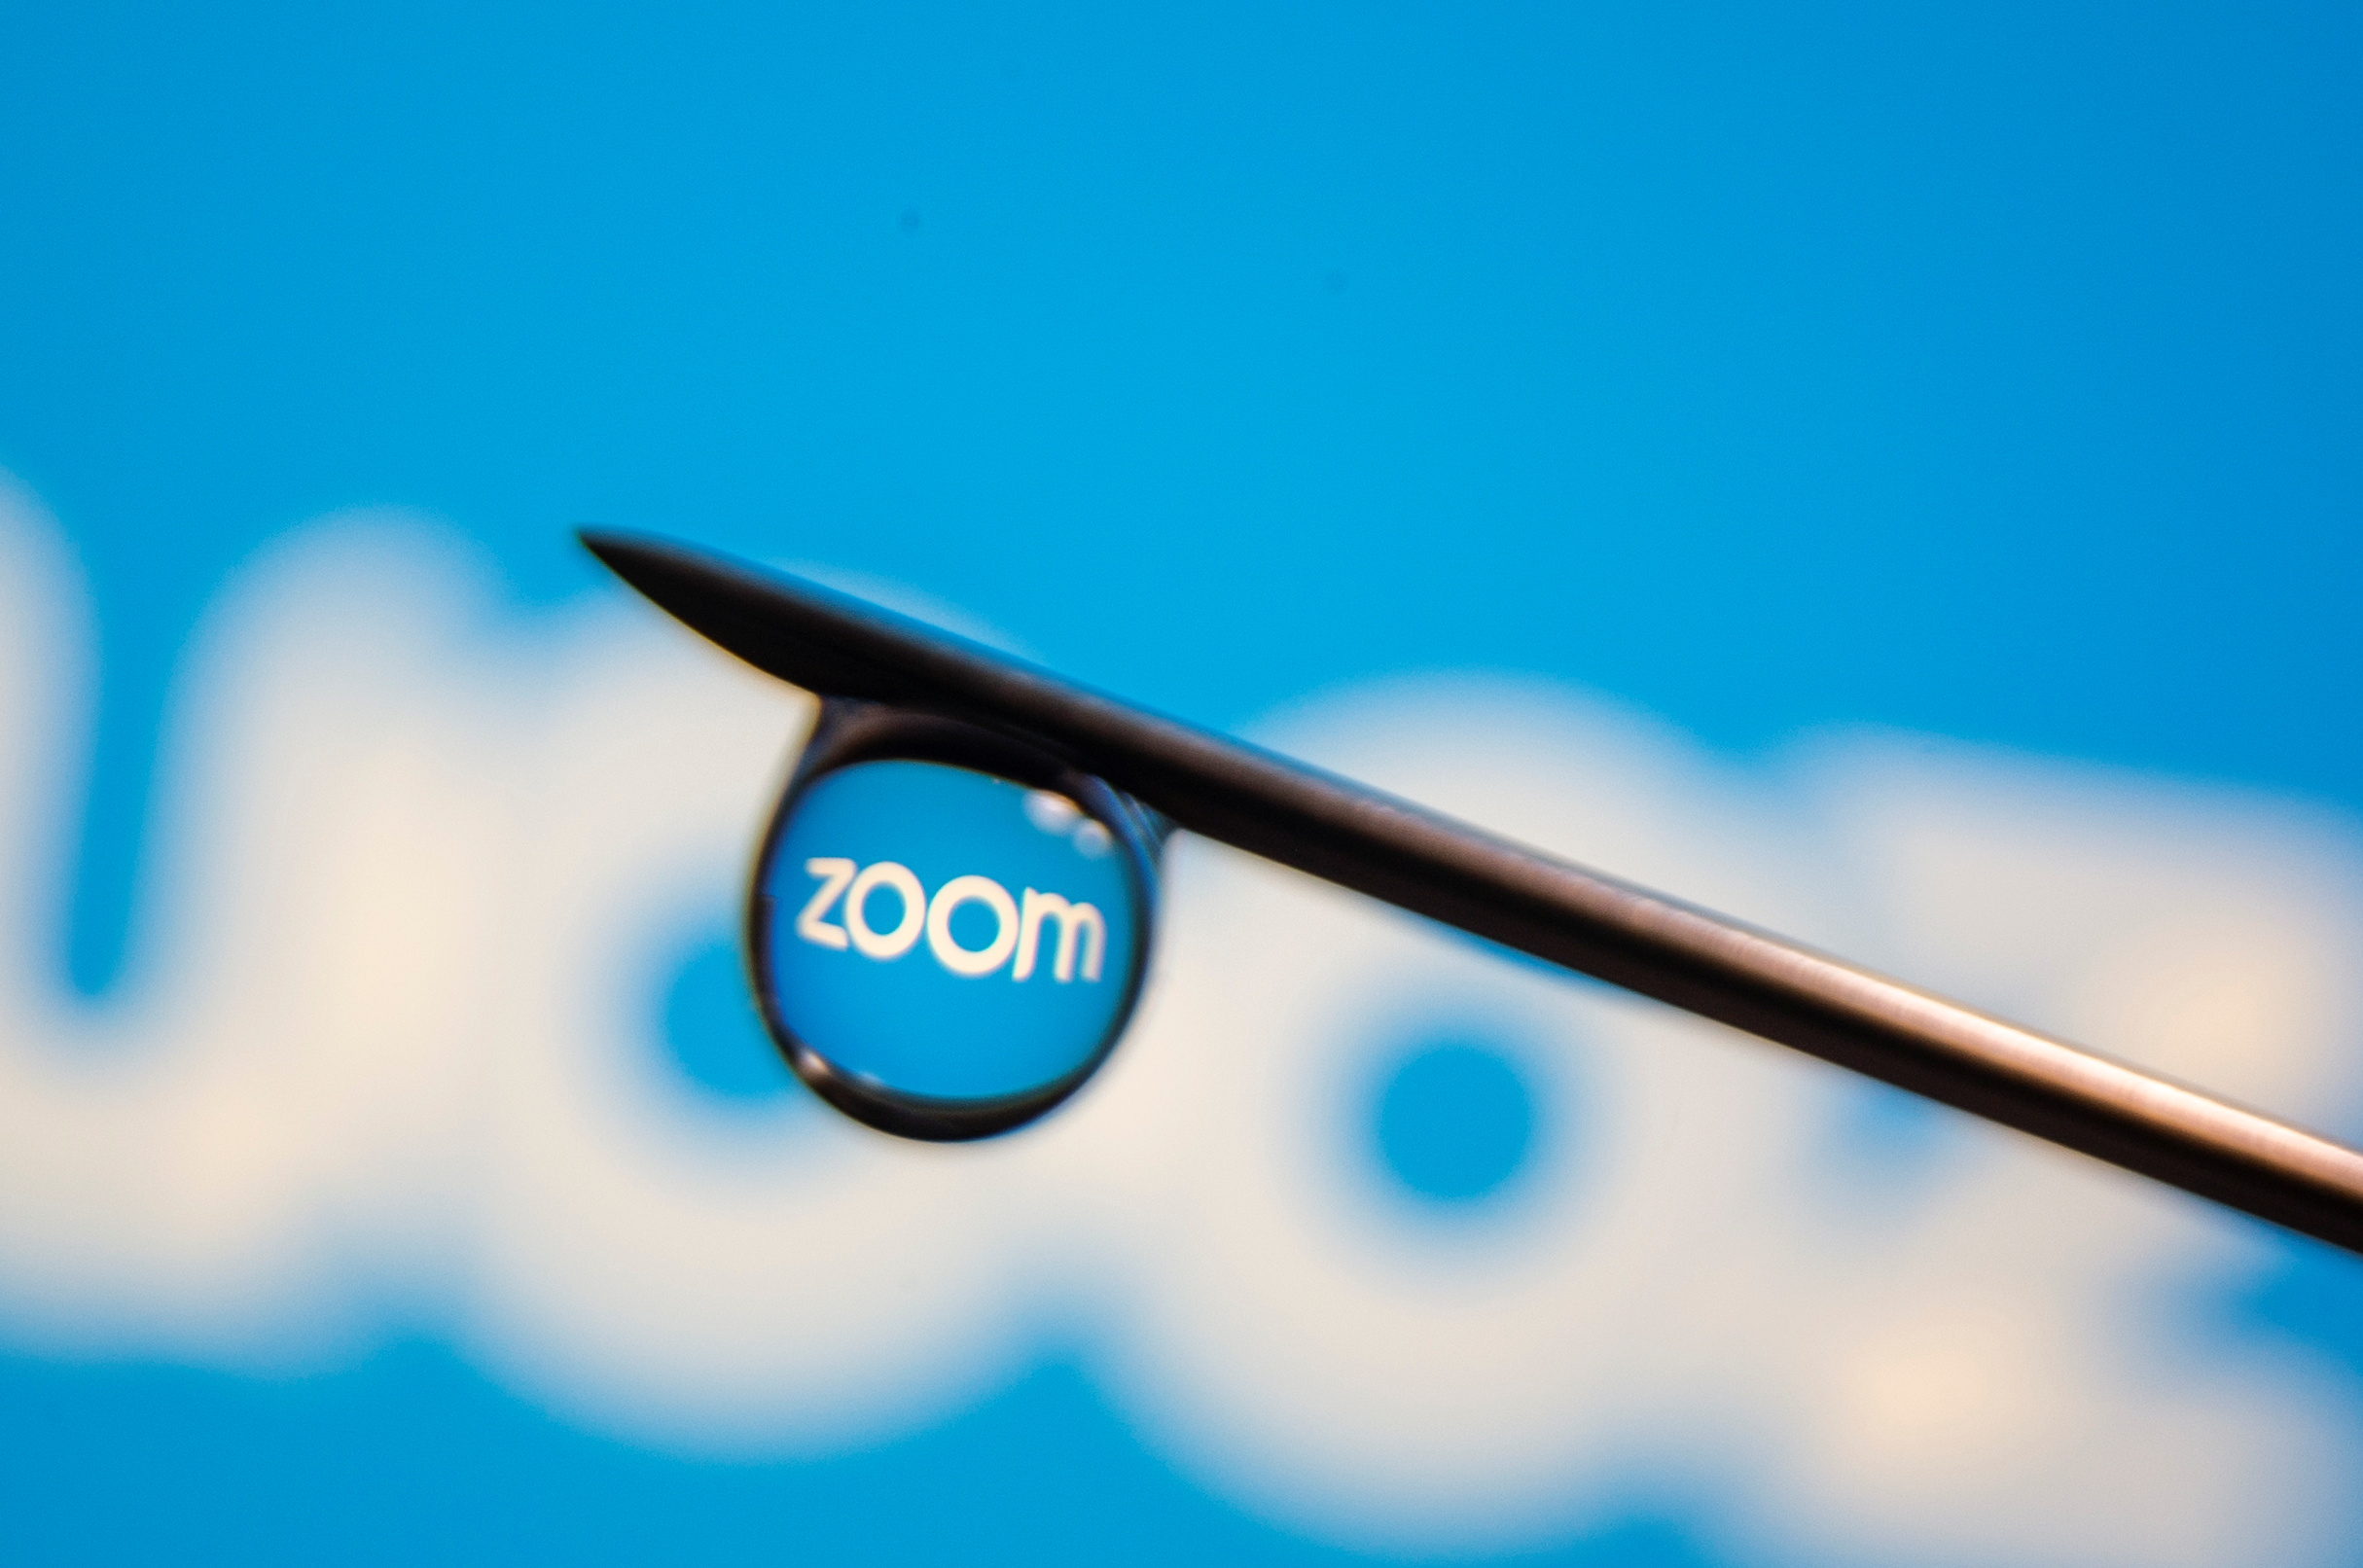 The Zoom logo is reflected in a drop on a syringe needle